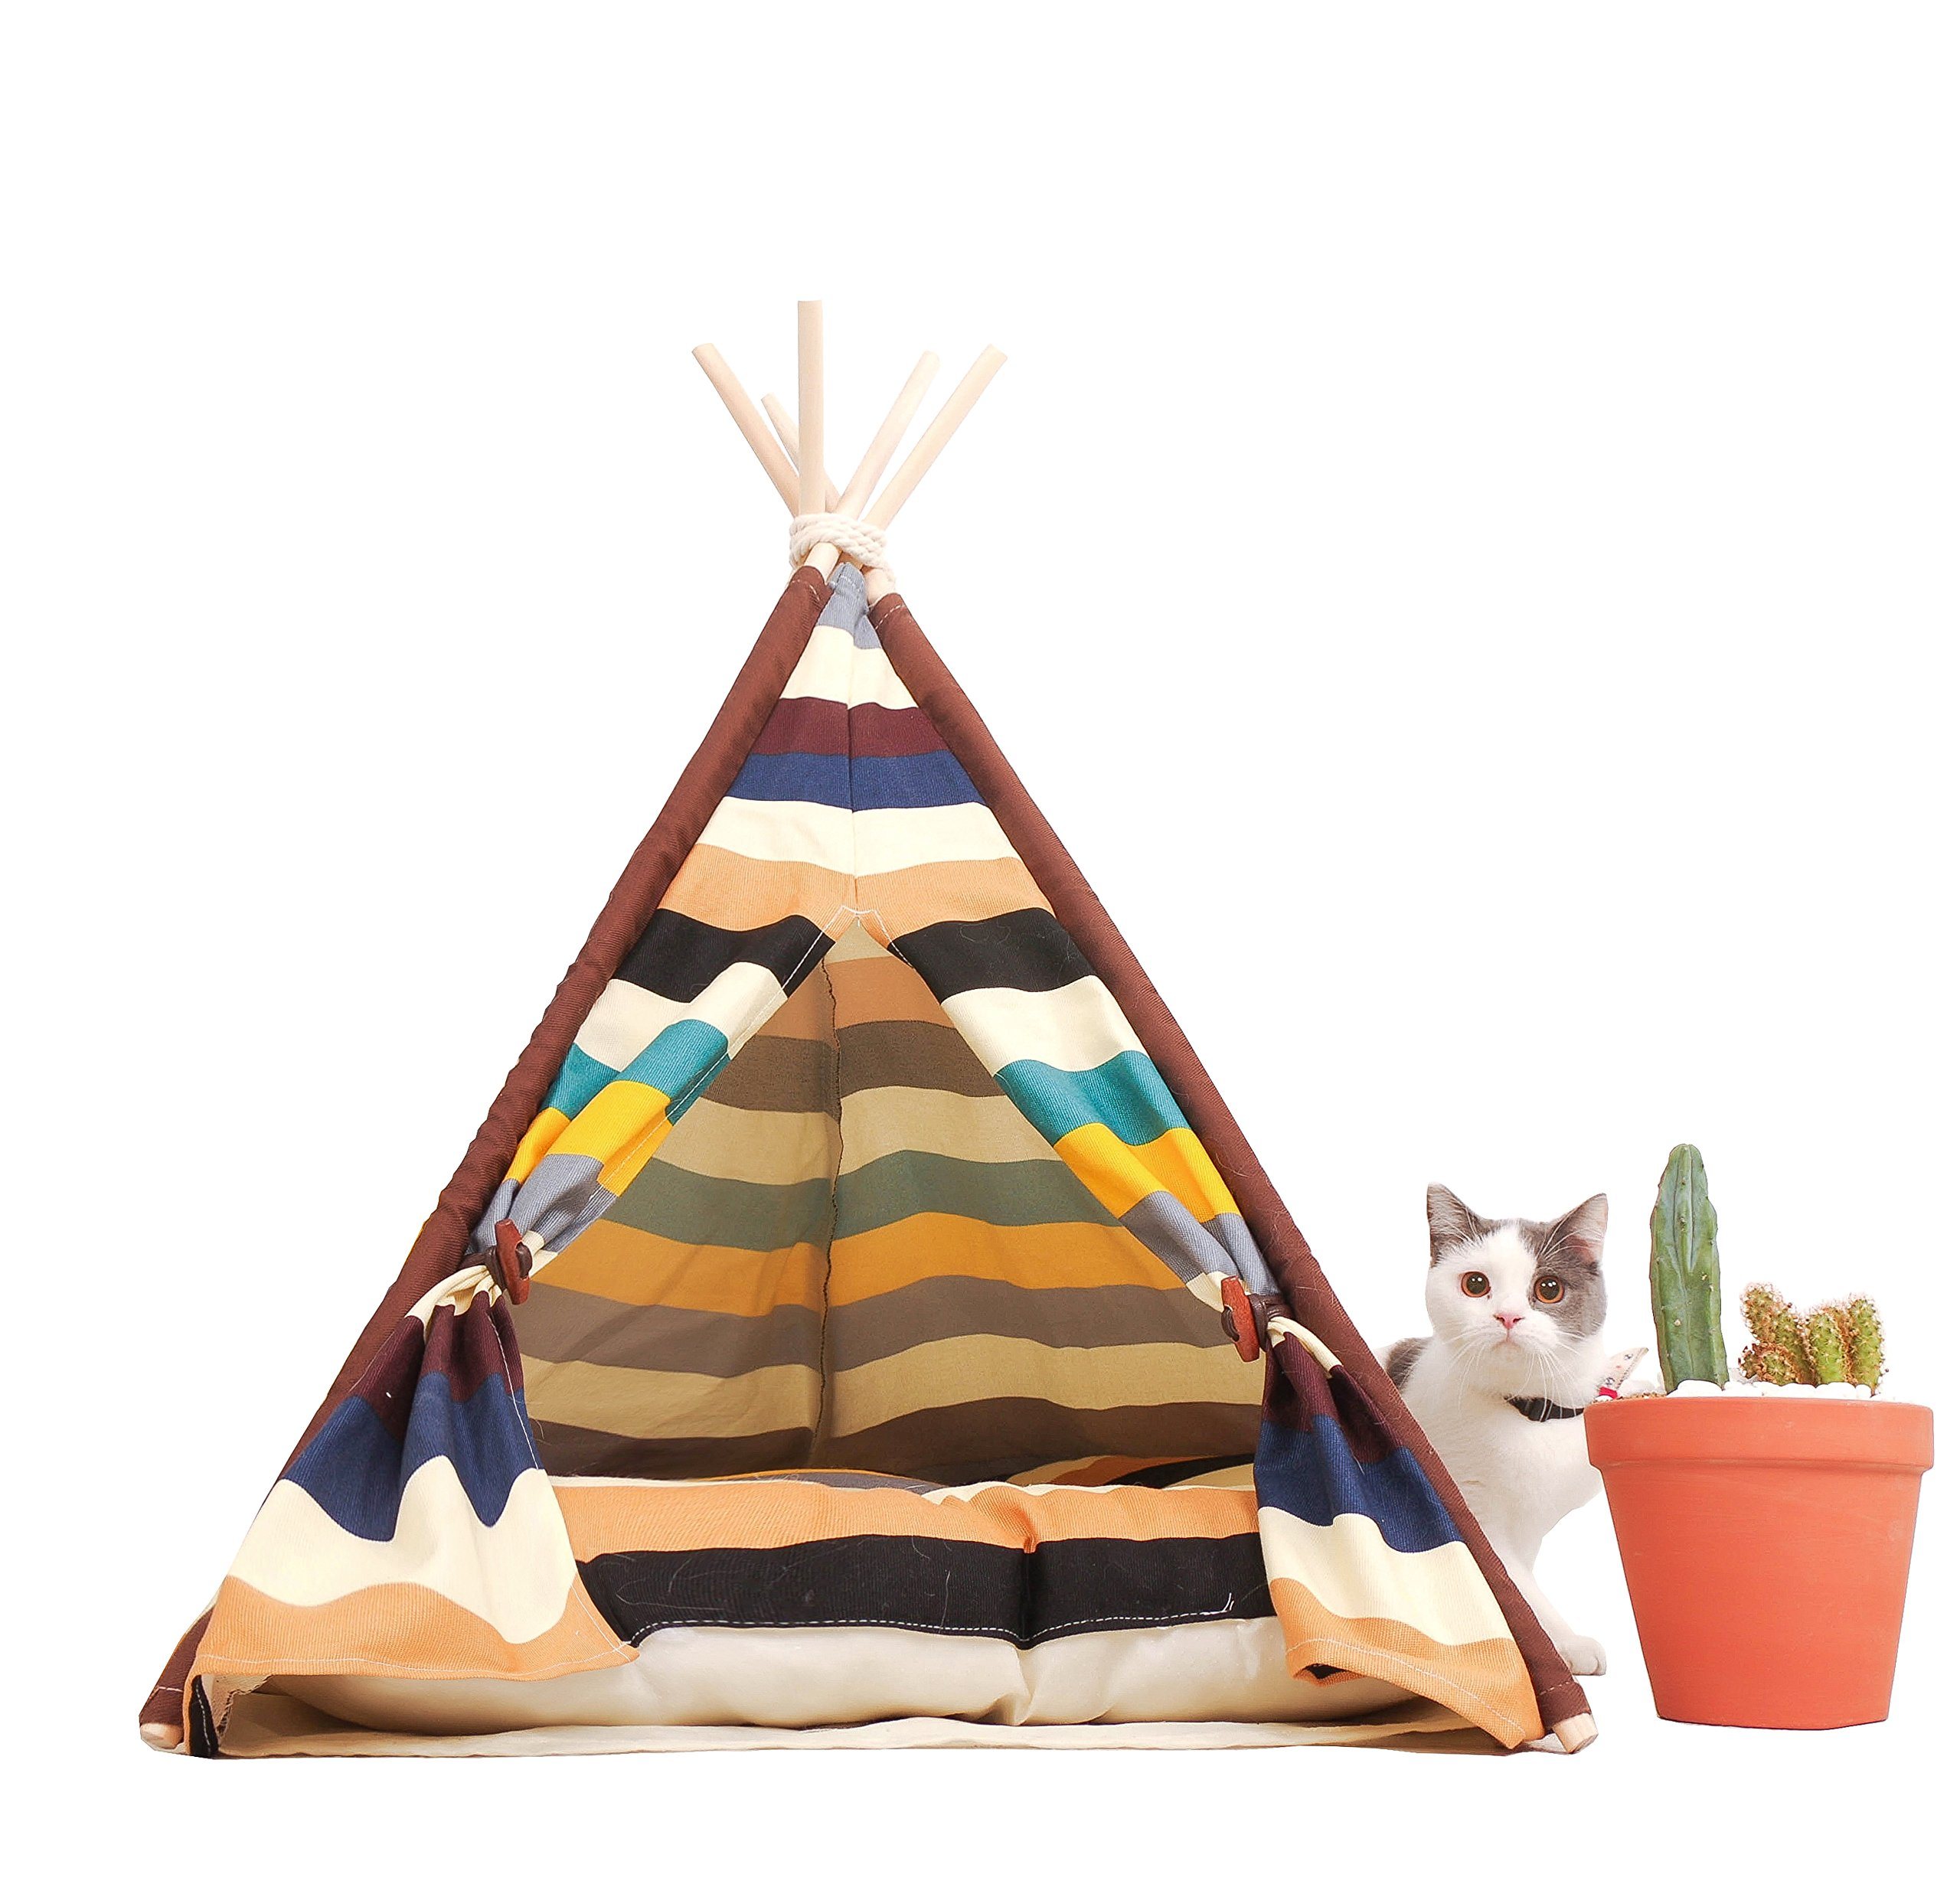 little dove Pet Teepee Dog(Puppy) & Cat Bed - Portable Pet Tents & Houses for Dog(Puppy) & Cat Colorful Style 24 Inch with Thick Cushion